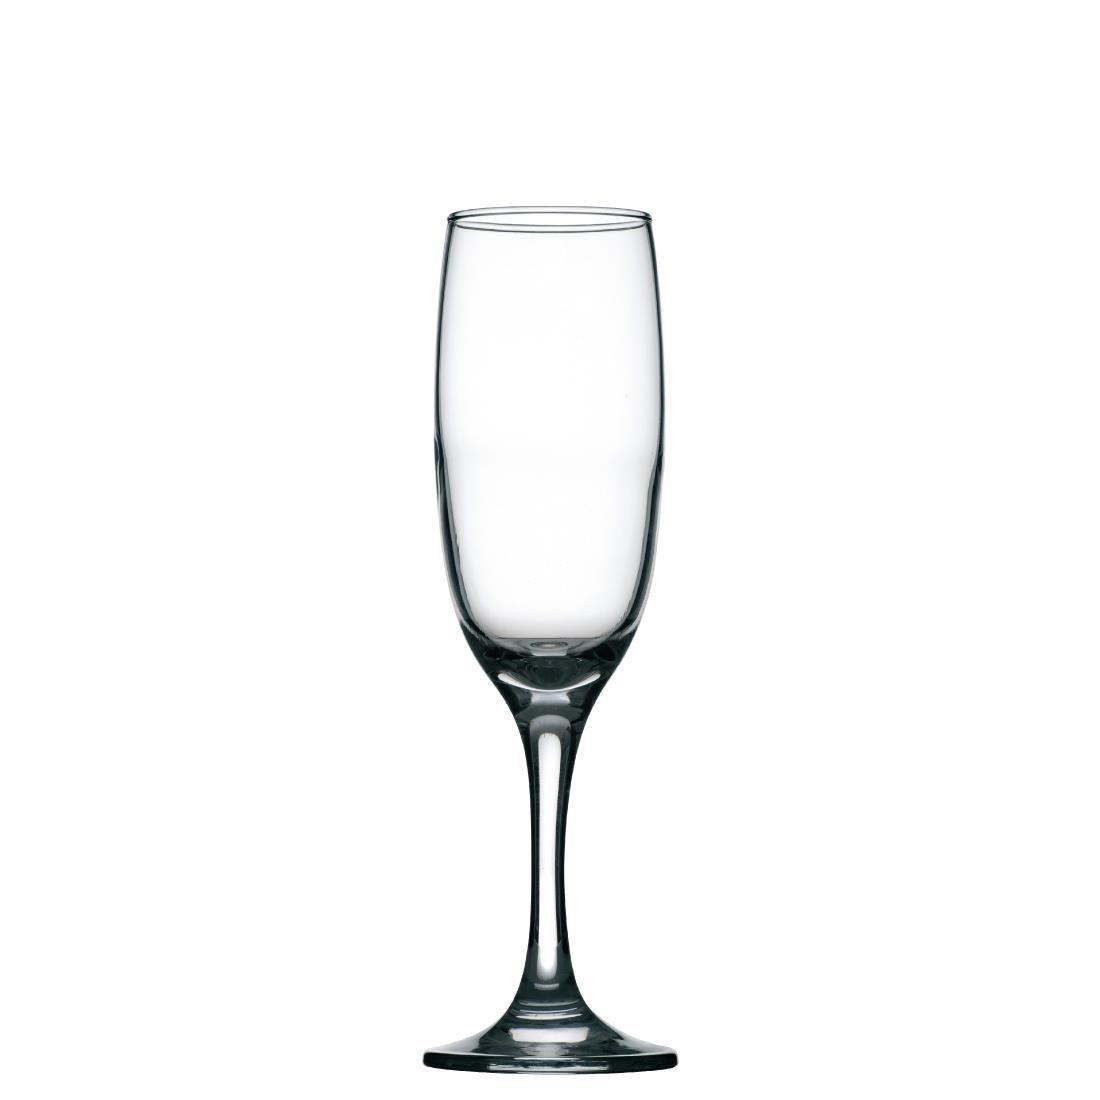 Imperial Flute Glass - 215ml 7.5oz (Box 24) - T273